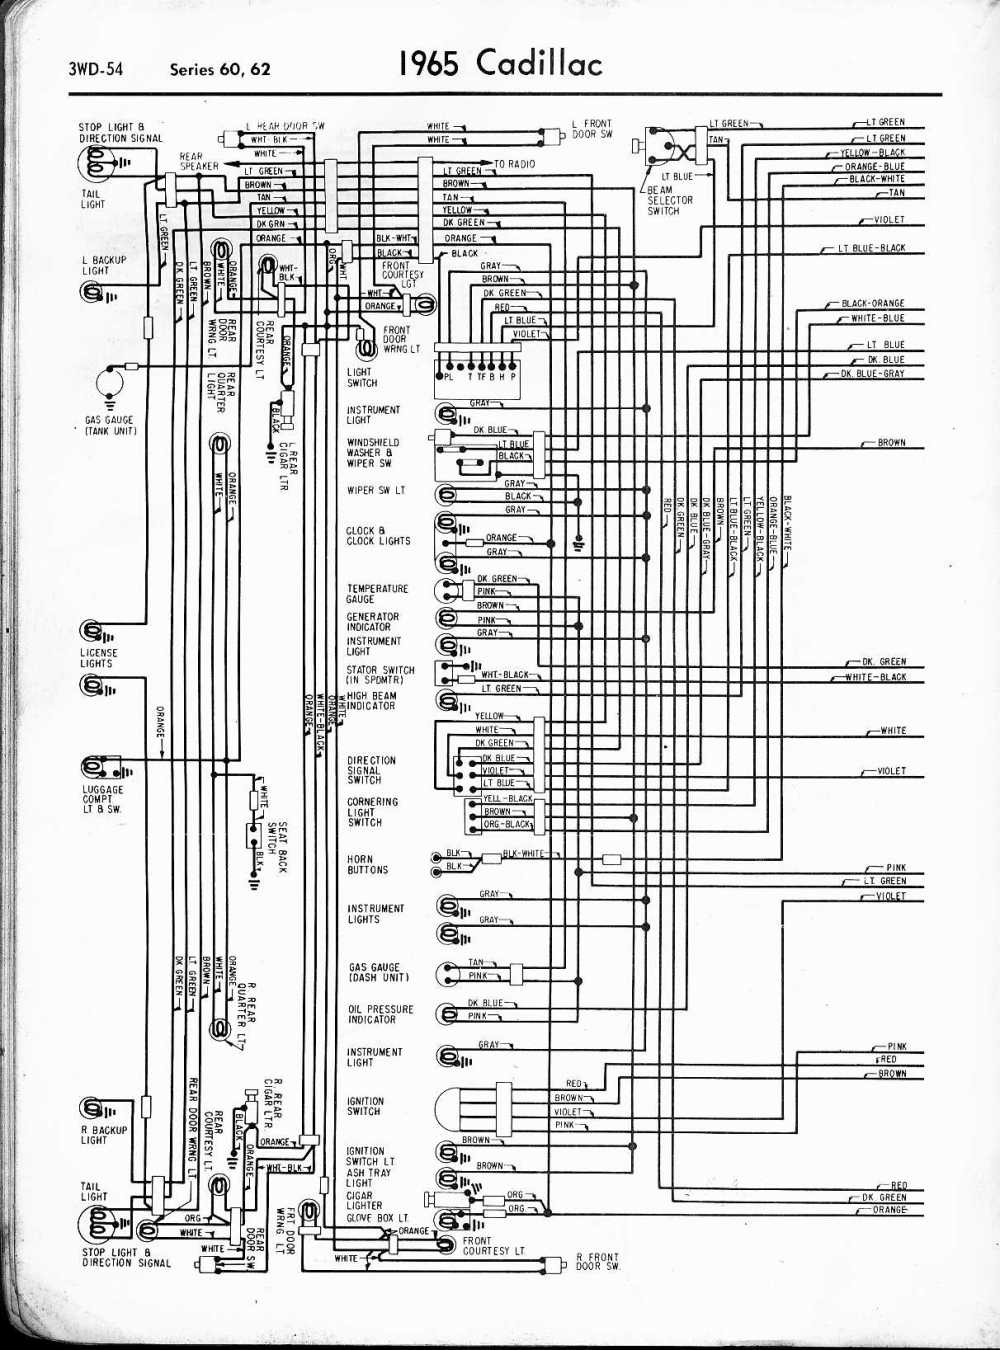 medium resolution of 1964 cadillac deville wiring diagrams wiring diagram pagecadillac wiring diagrams 1957 1965 1964 cadillac deville wiring